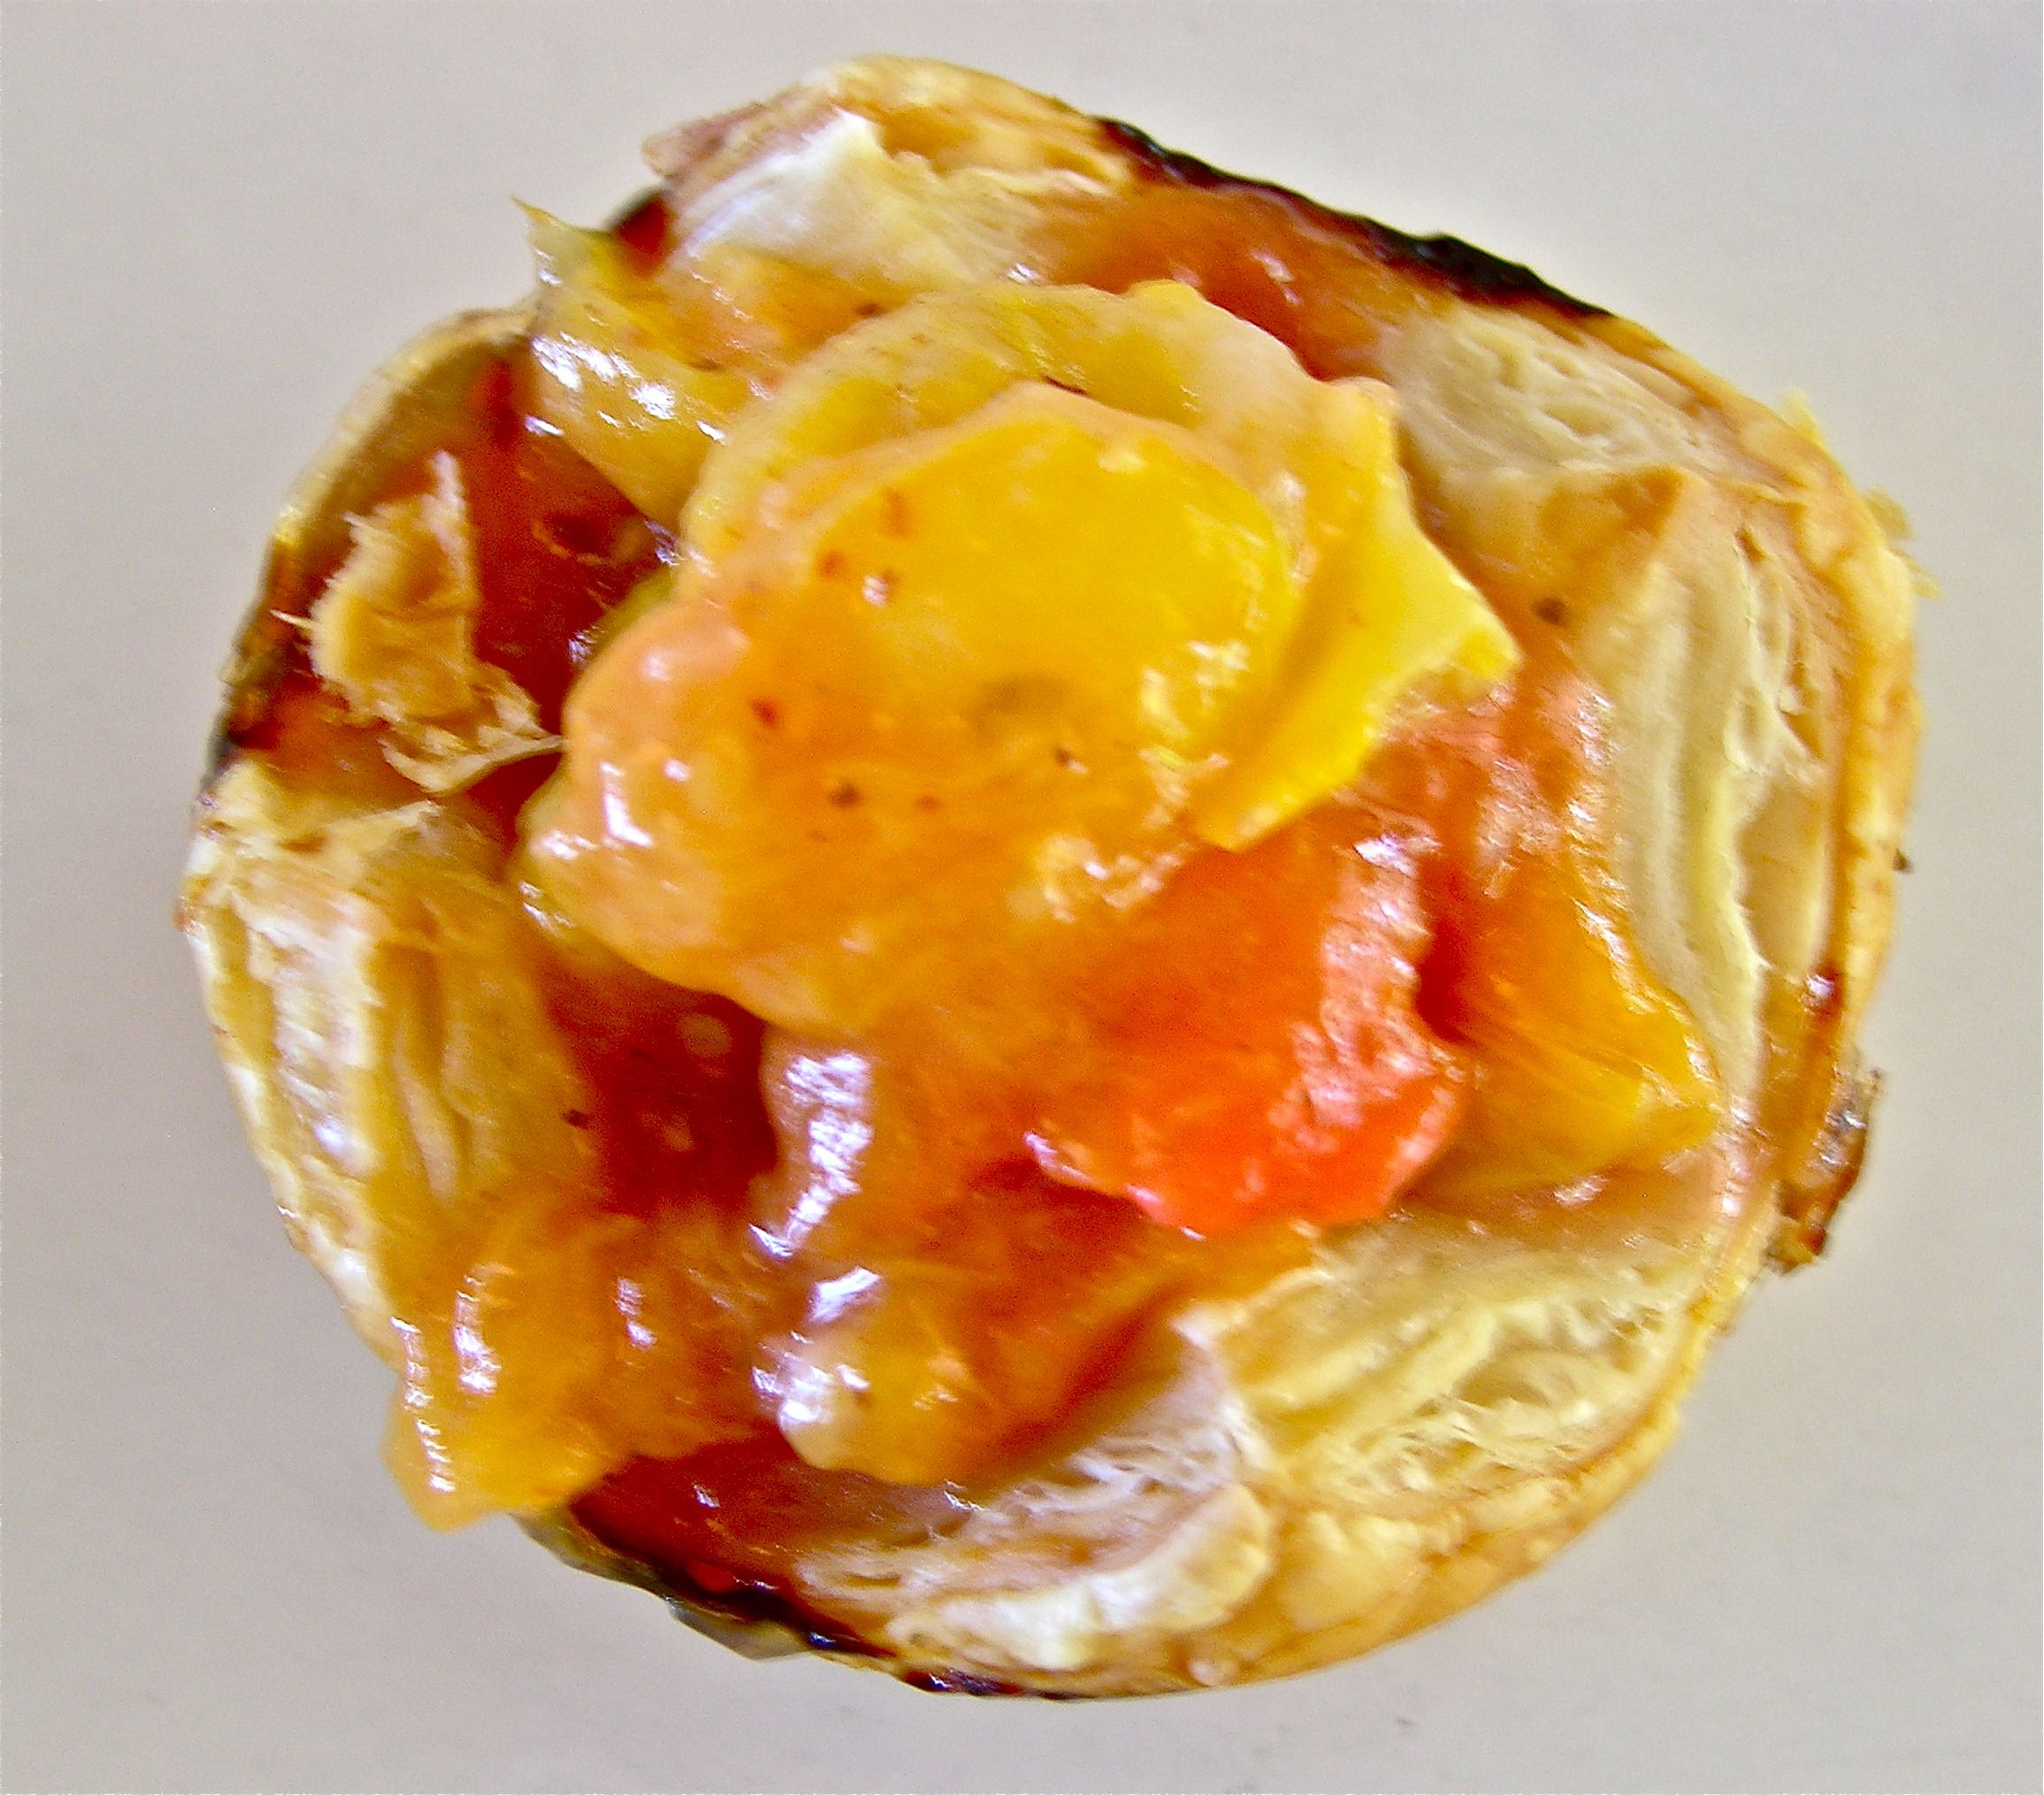 ANCIENT HEIRLOOM PLUM AND TOMATO TARTLETTS